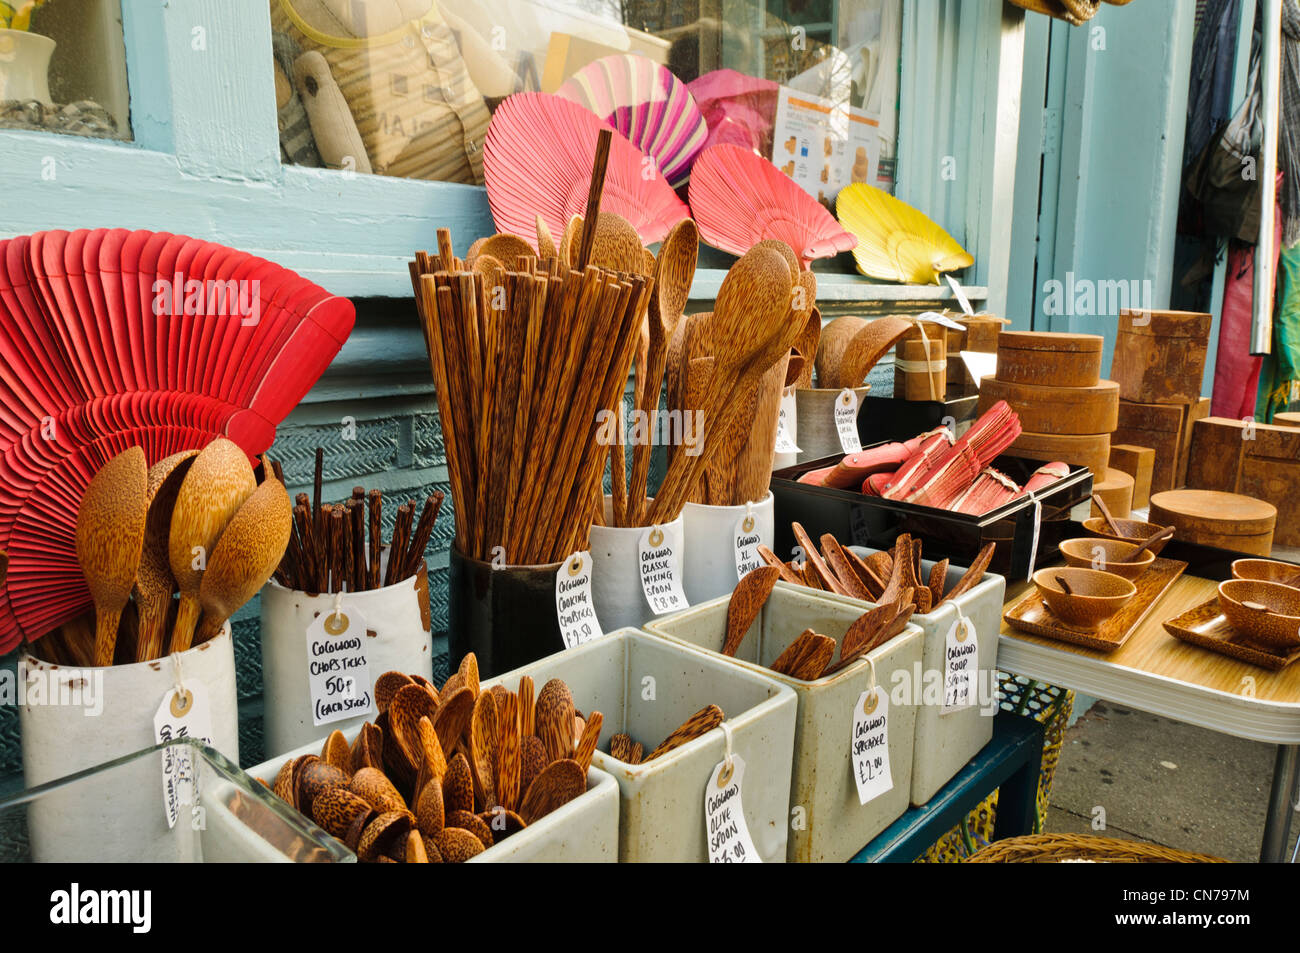 Shop selling wooden kitchen utensils in Columbia Road, East London - Stock Image